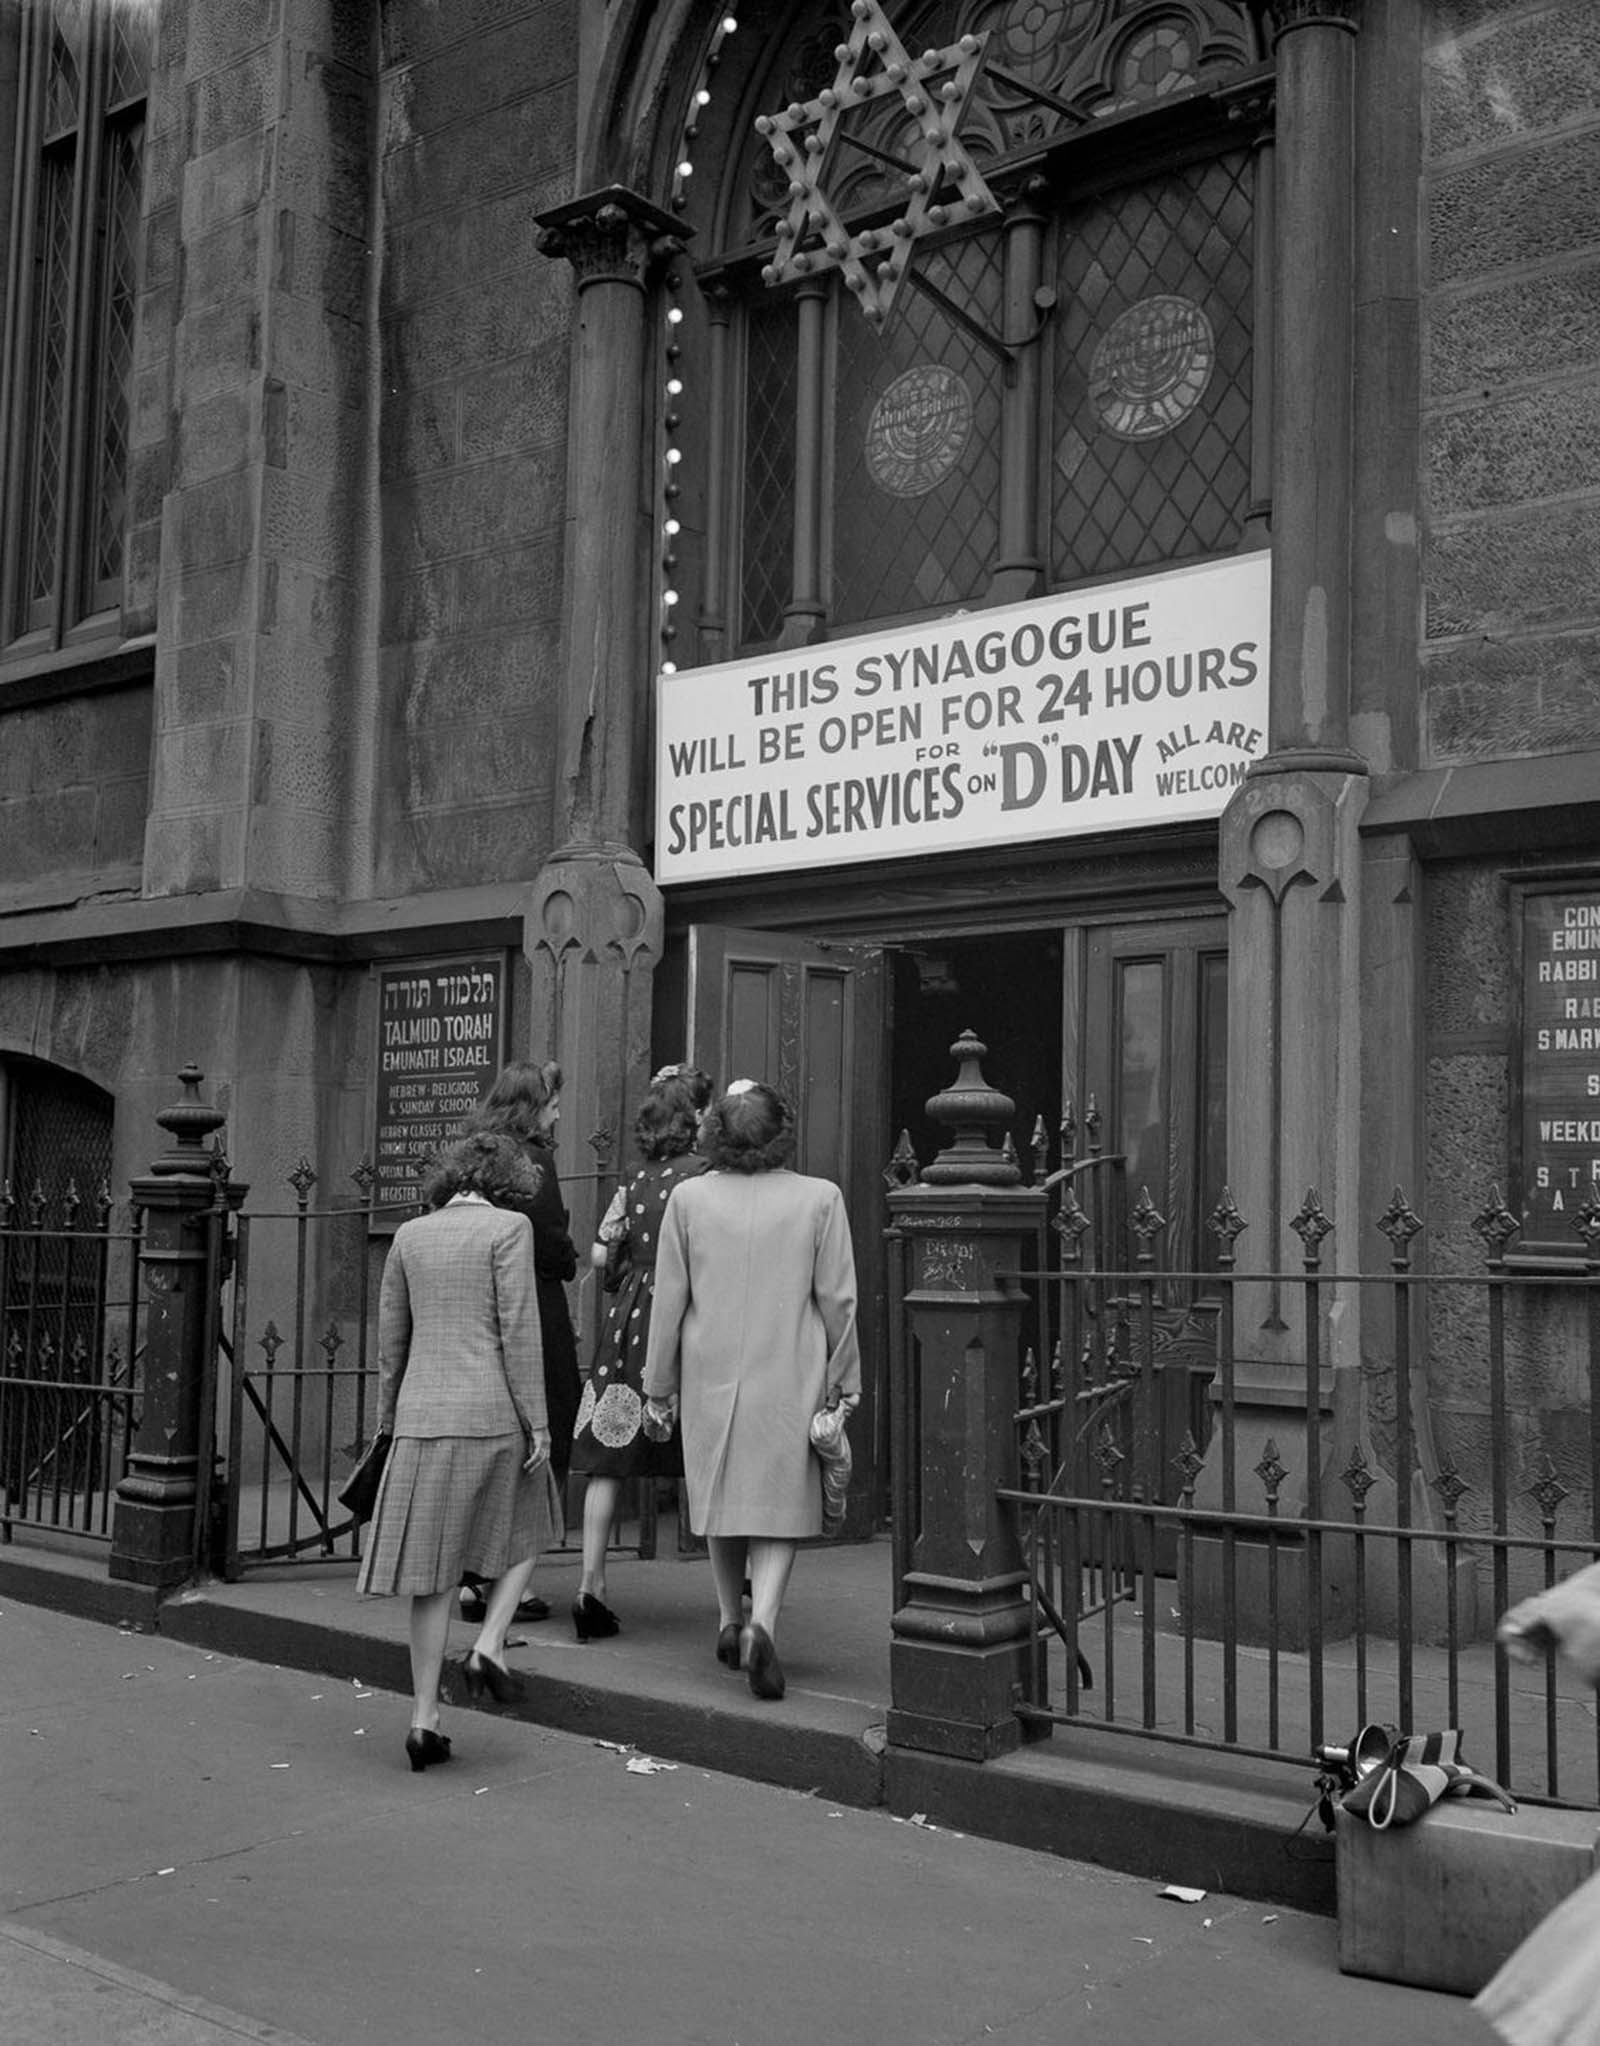 Worshippers enter a synagogue on 23rd Street for a special D-Day service.